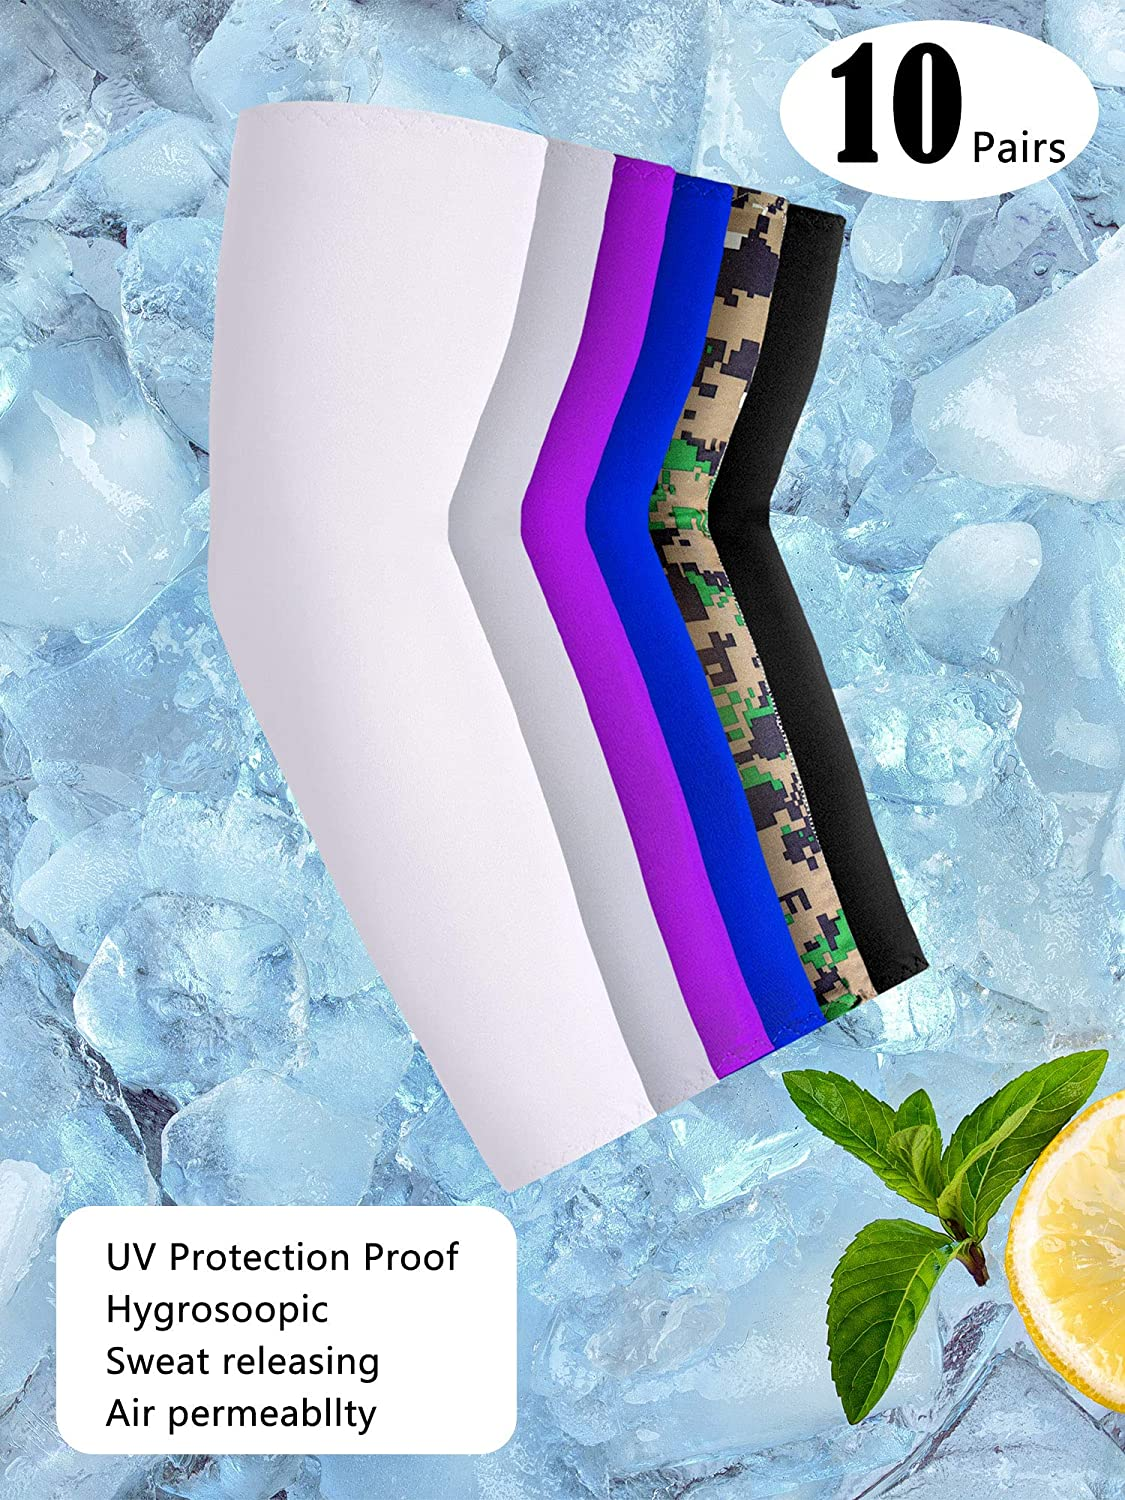 White, Grey, Purple, Blue, Camo, Black 10 Pairs UV Protection Cooling Arm Sleeves Anti-Slip Sun Protection Arm Sleeves Ice Silk Arm Covers